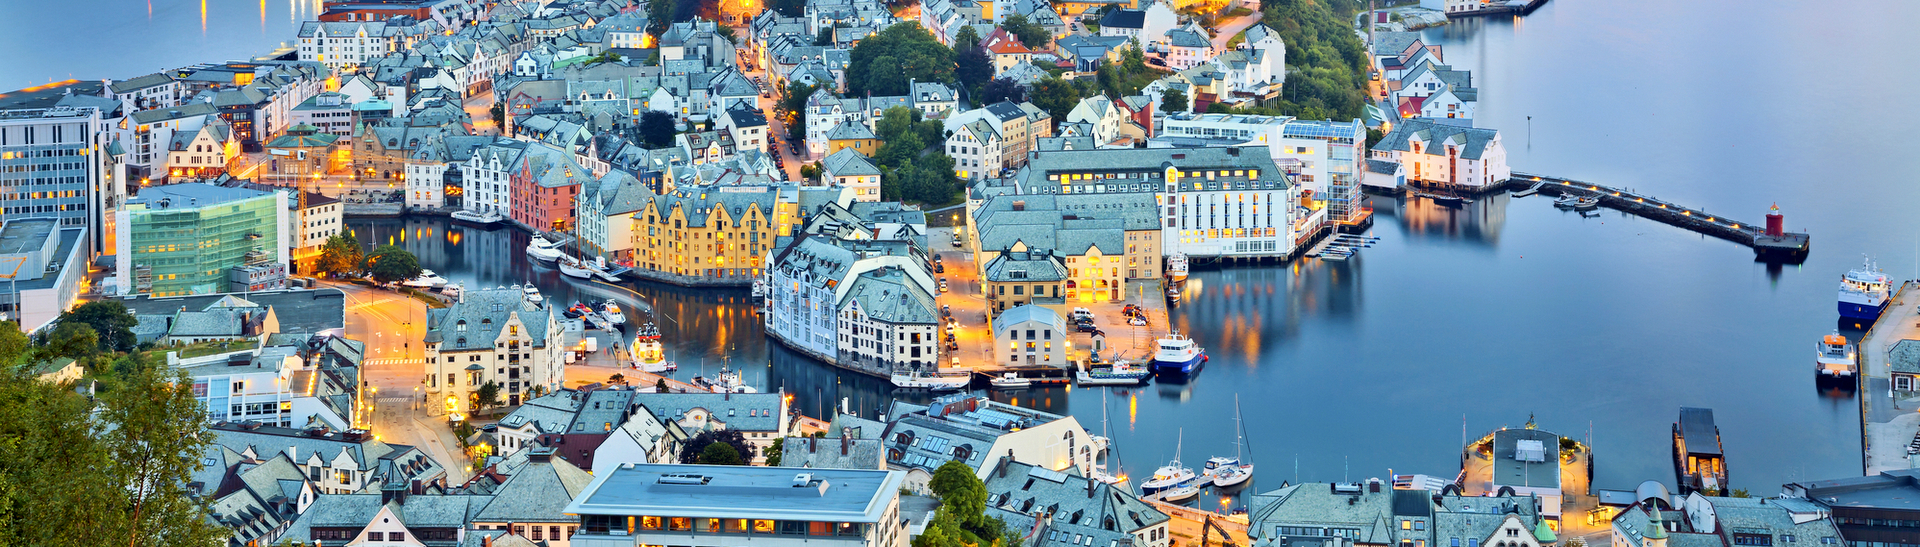 Set amidst the marvelous fjords - Alesund is a highlight of your Norway tour